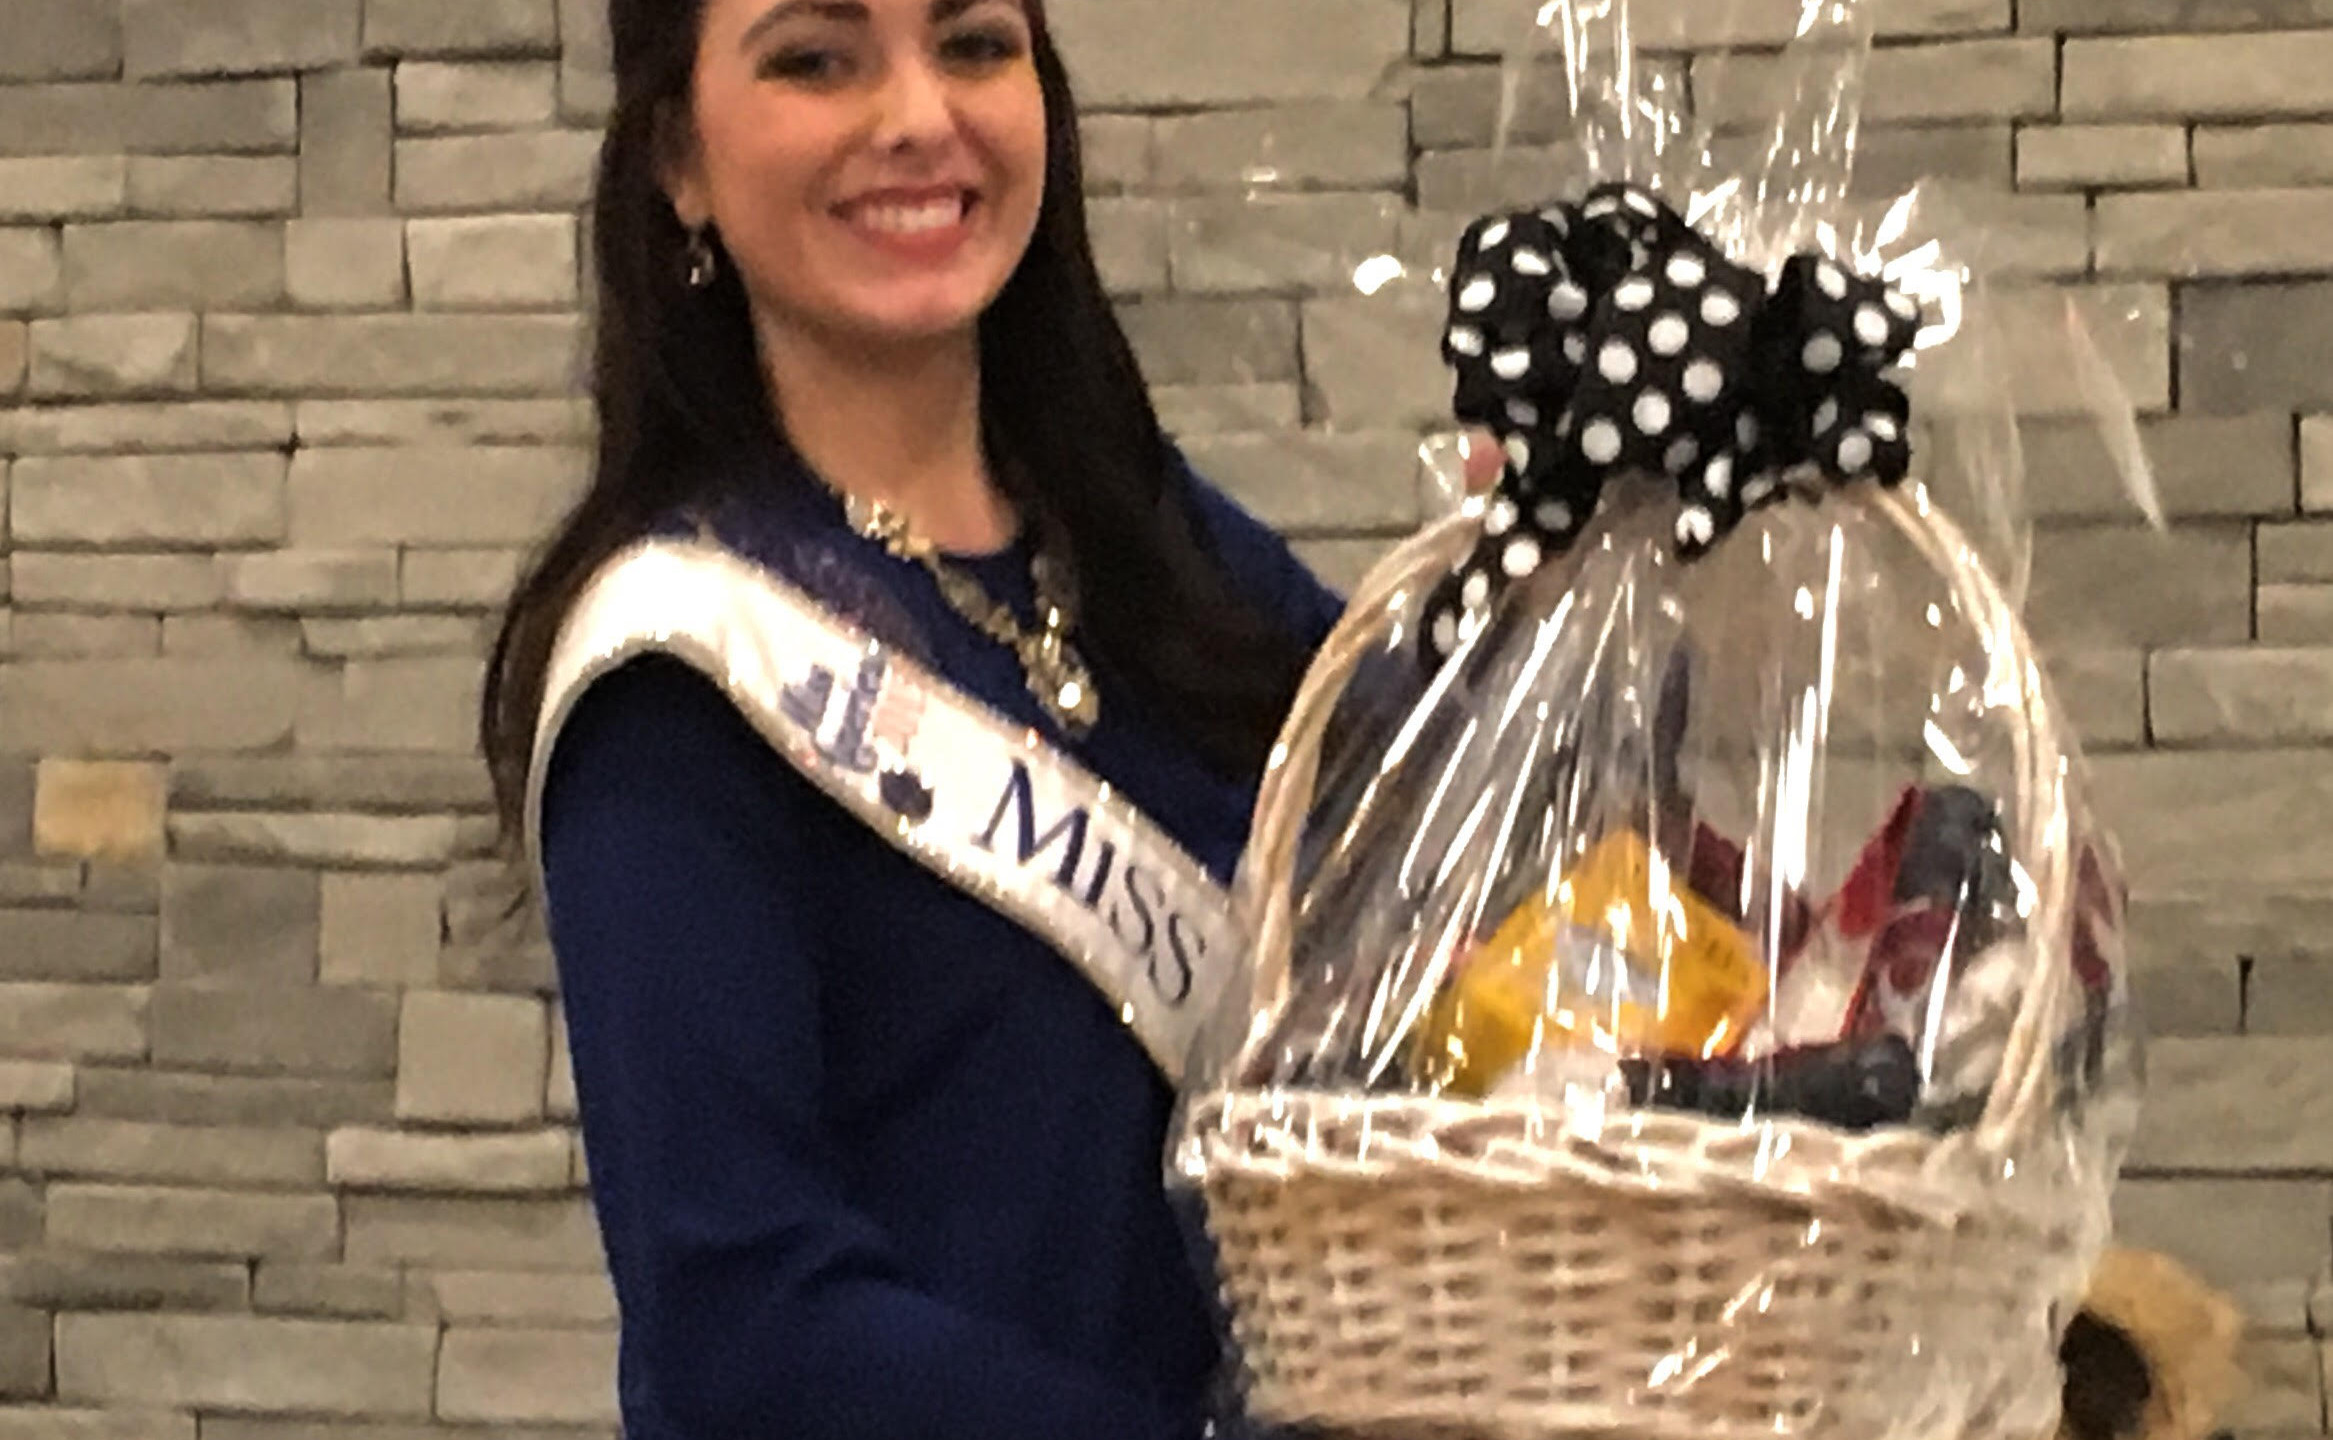 Miss Missouri McKensie Garber showing off a gift basket during the auction